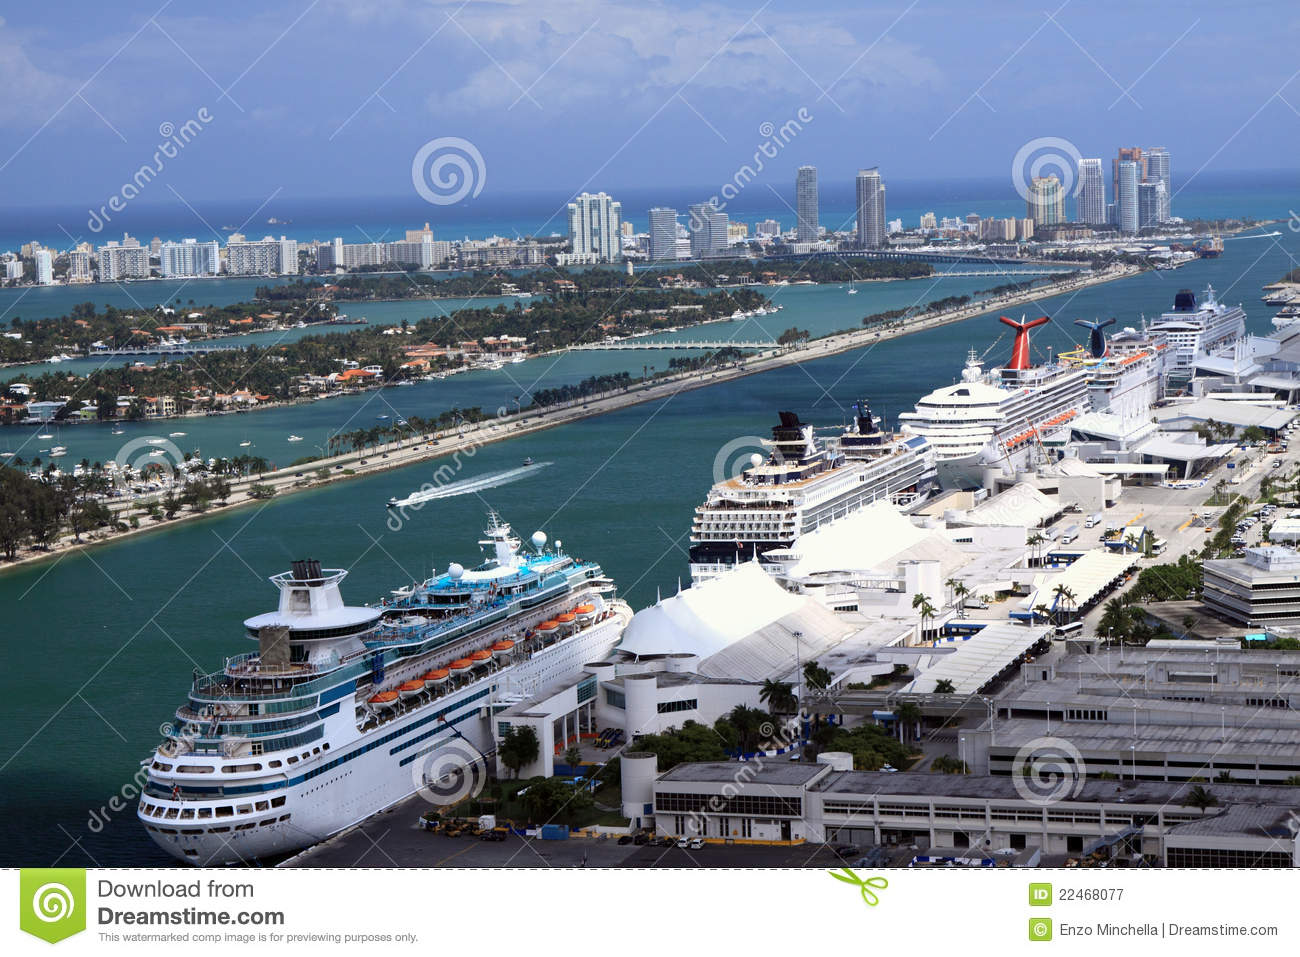 Miami Port Cruise Ships At Miami Port Stock Image Image Of Boats 22468077